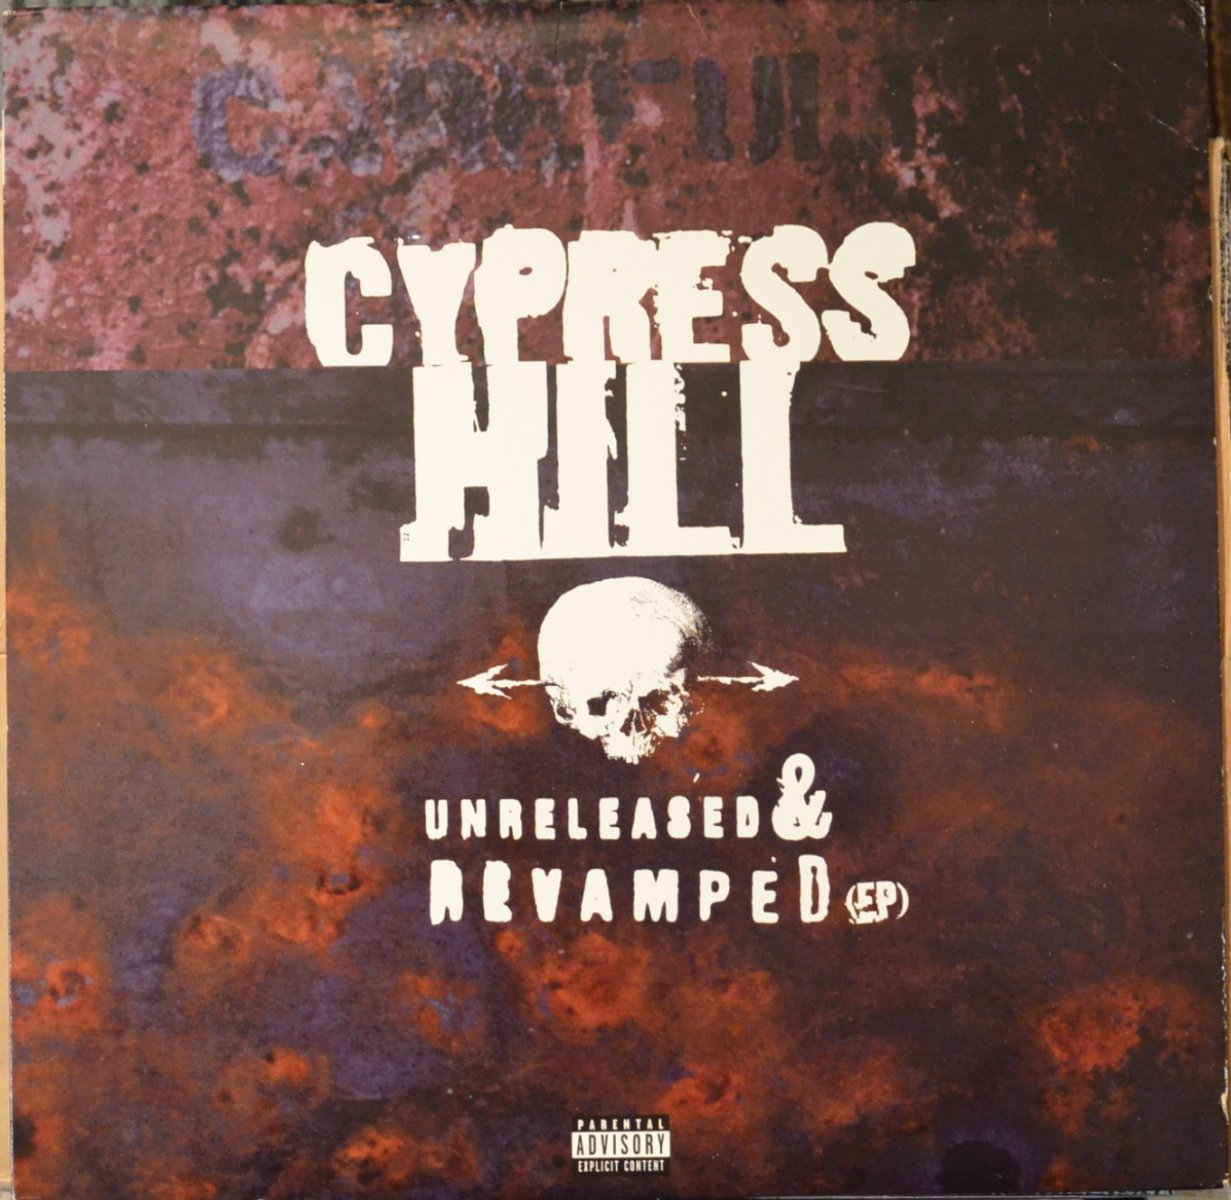 CYPRESS HILL / UNRELEASED & REVAMPED E.P. (12